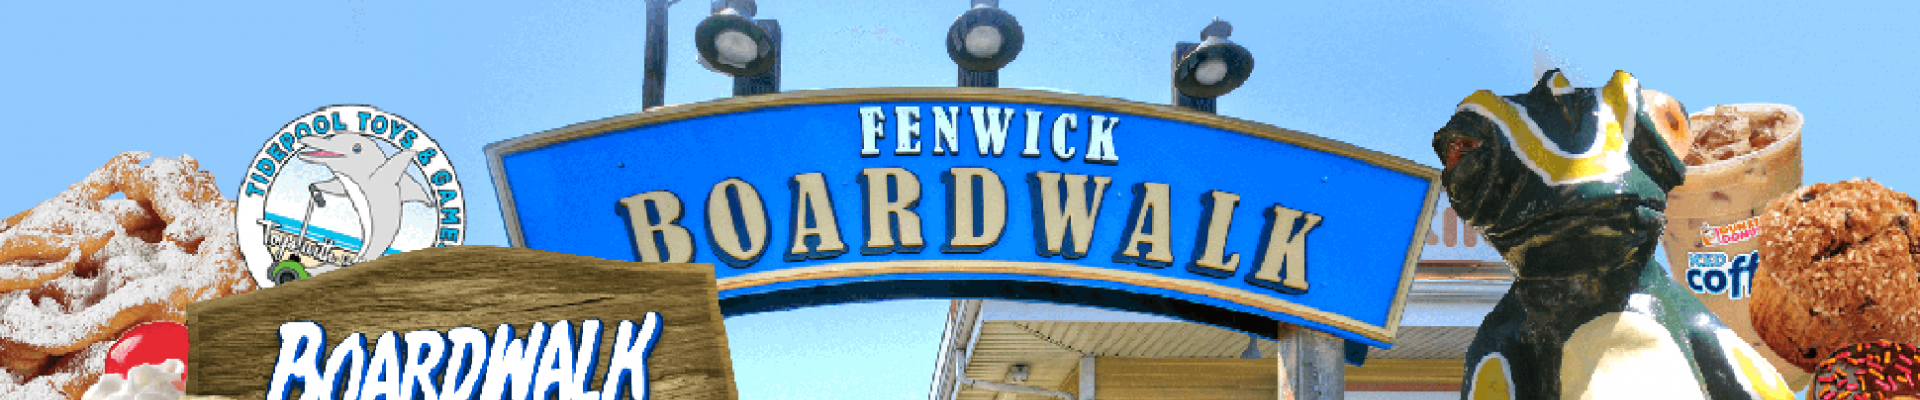 Fenwick Boardwalk